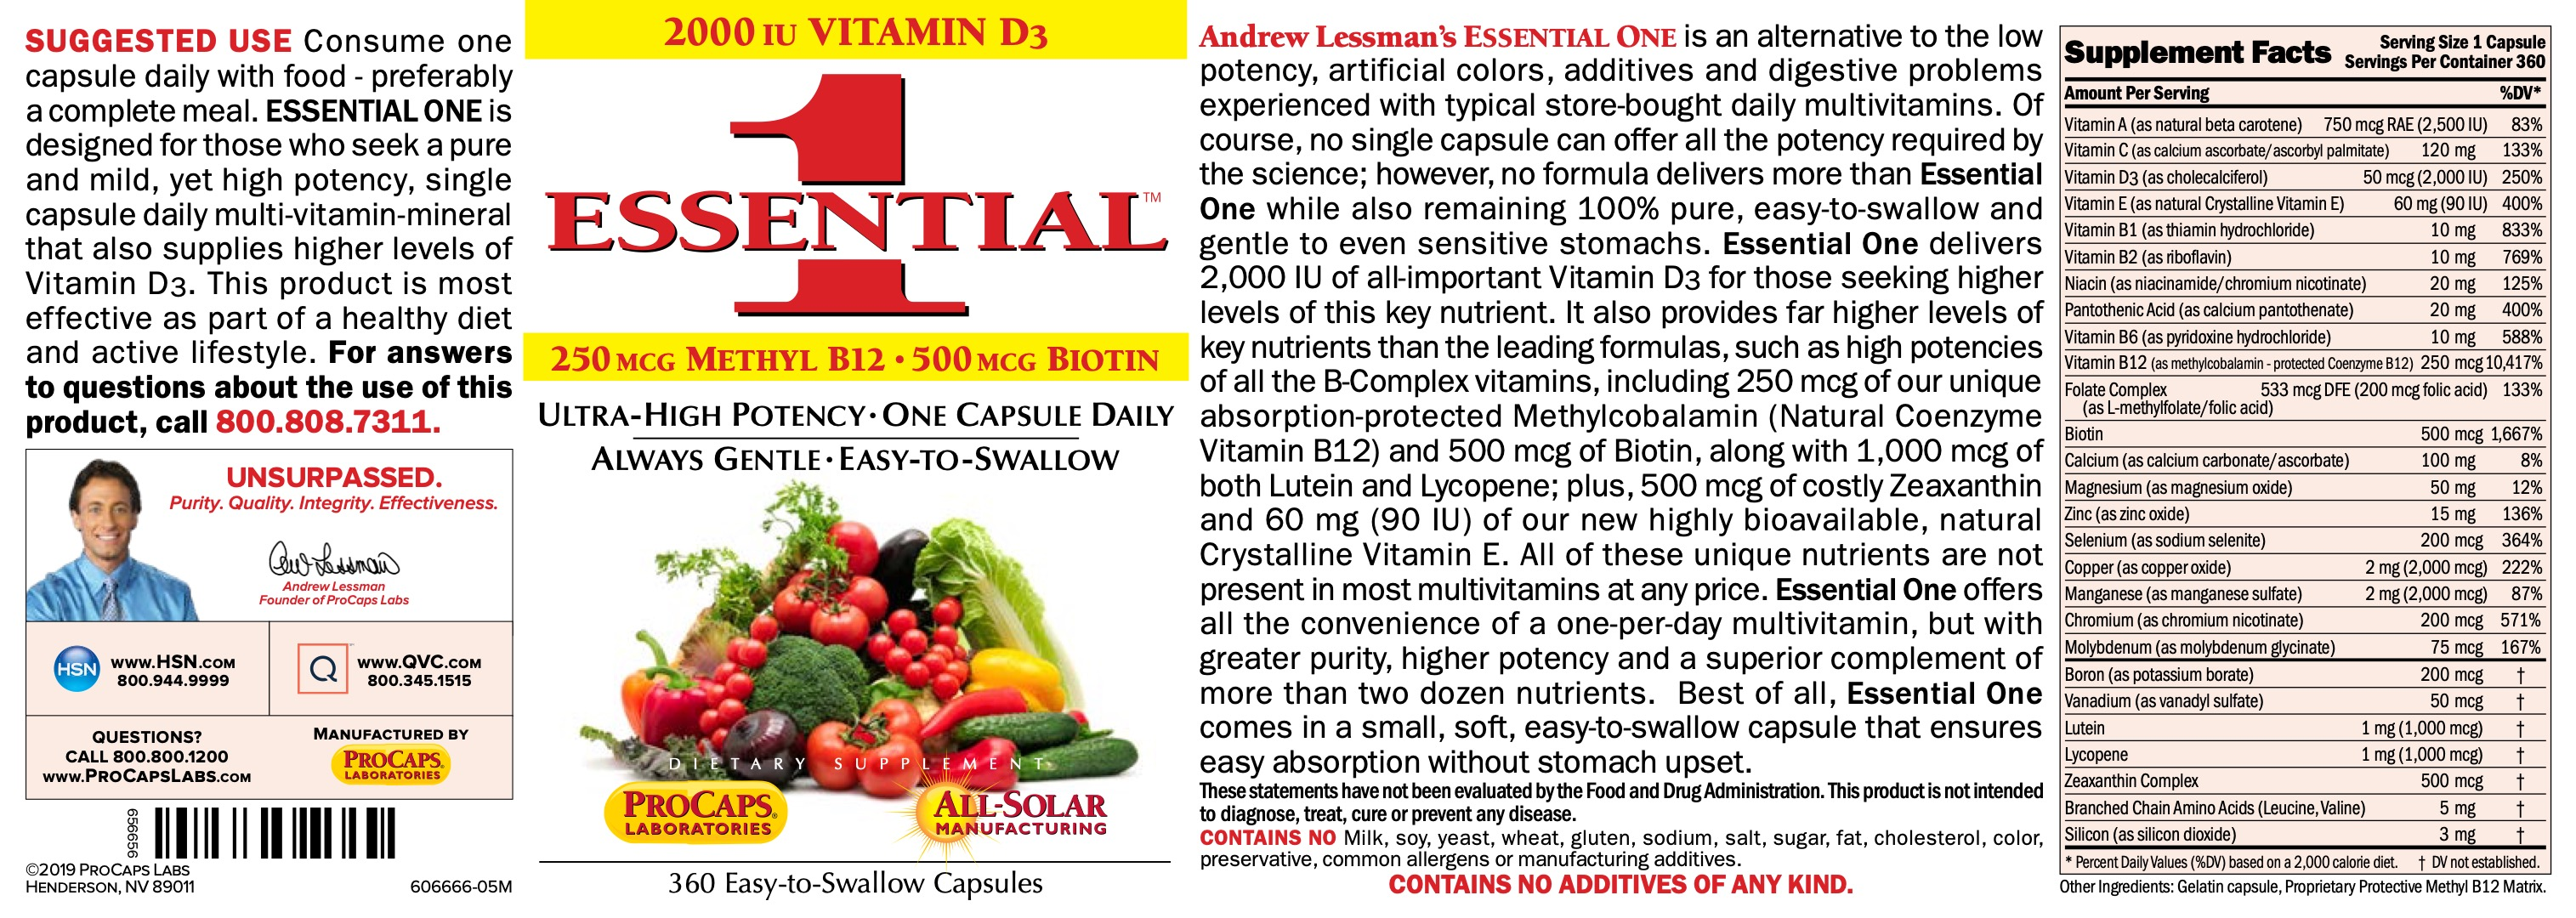 Essential-1-with-2000-IU-Vitamin-D3-Capsules-Multivitamins